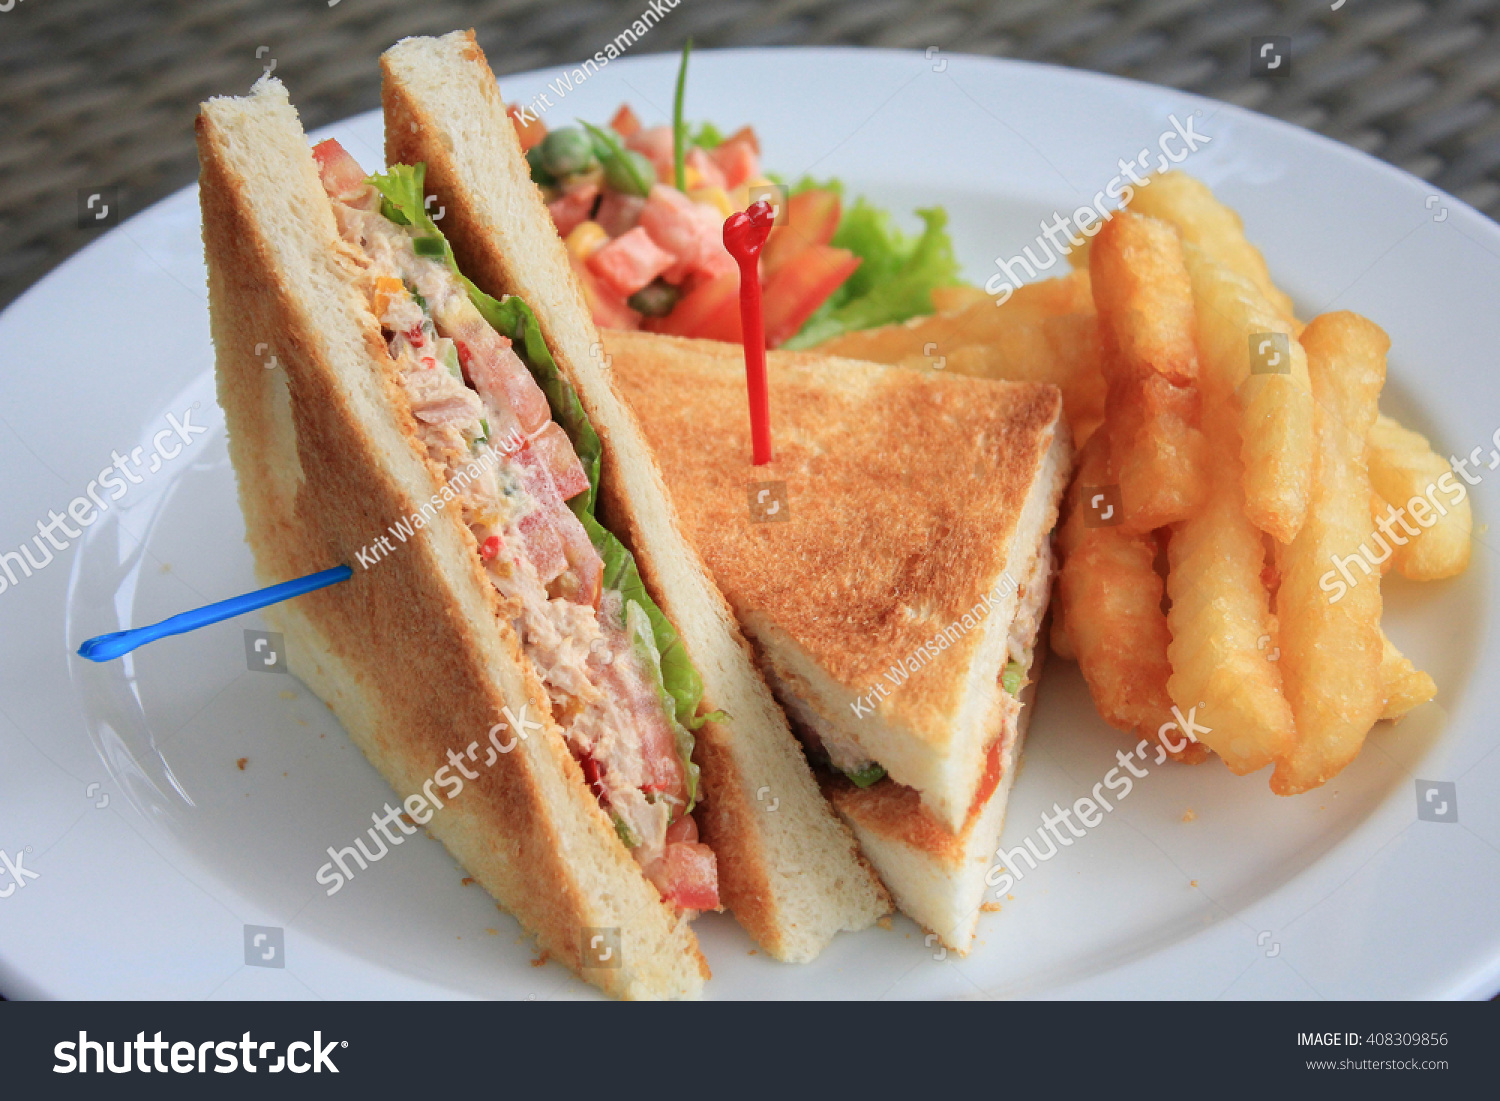 Aninimal Book: Tuna Sandwich Served With French Fries Stock Photo ...